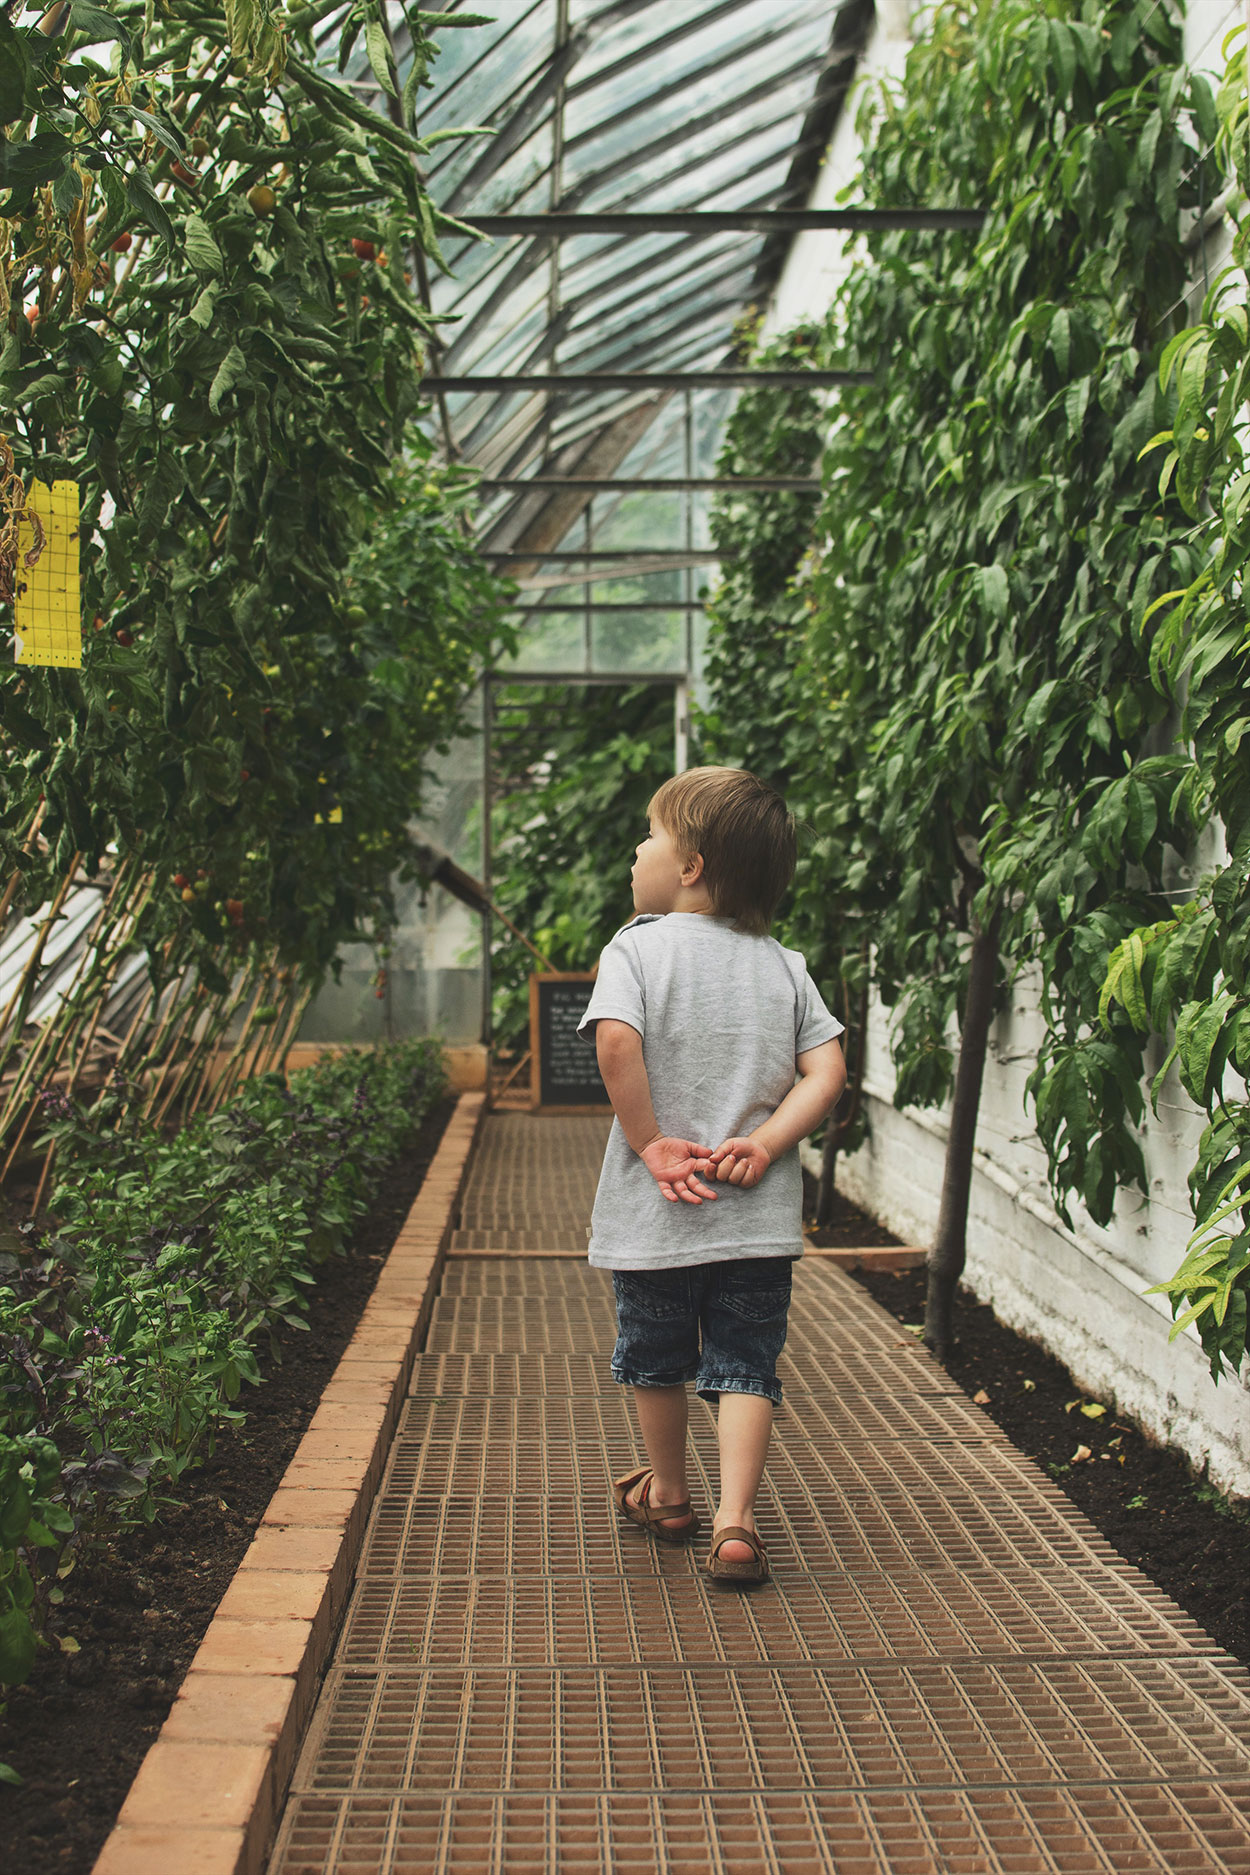 Young boy walking through the greenhouses looking at the grapevines at Tyntesfield Estate, Hampshire, National Trust